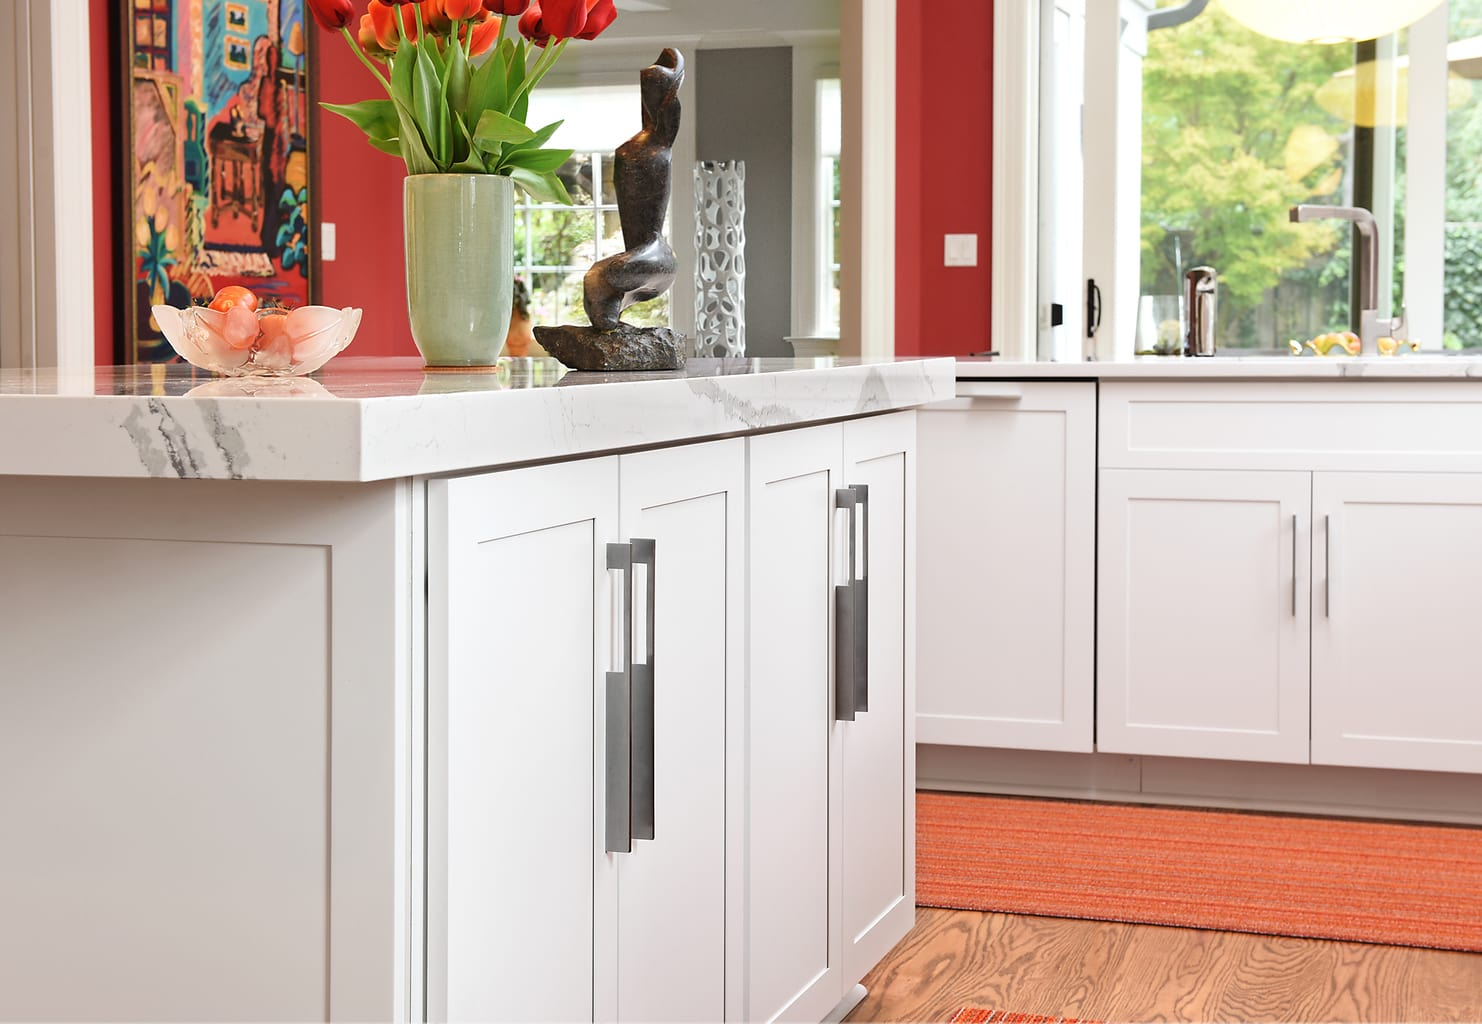 Shaker Doors Kitchen White Shaker Doors And Stainless Steel Appliances Highlight The